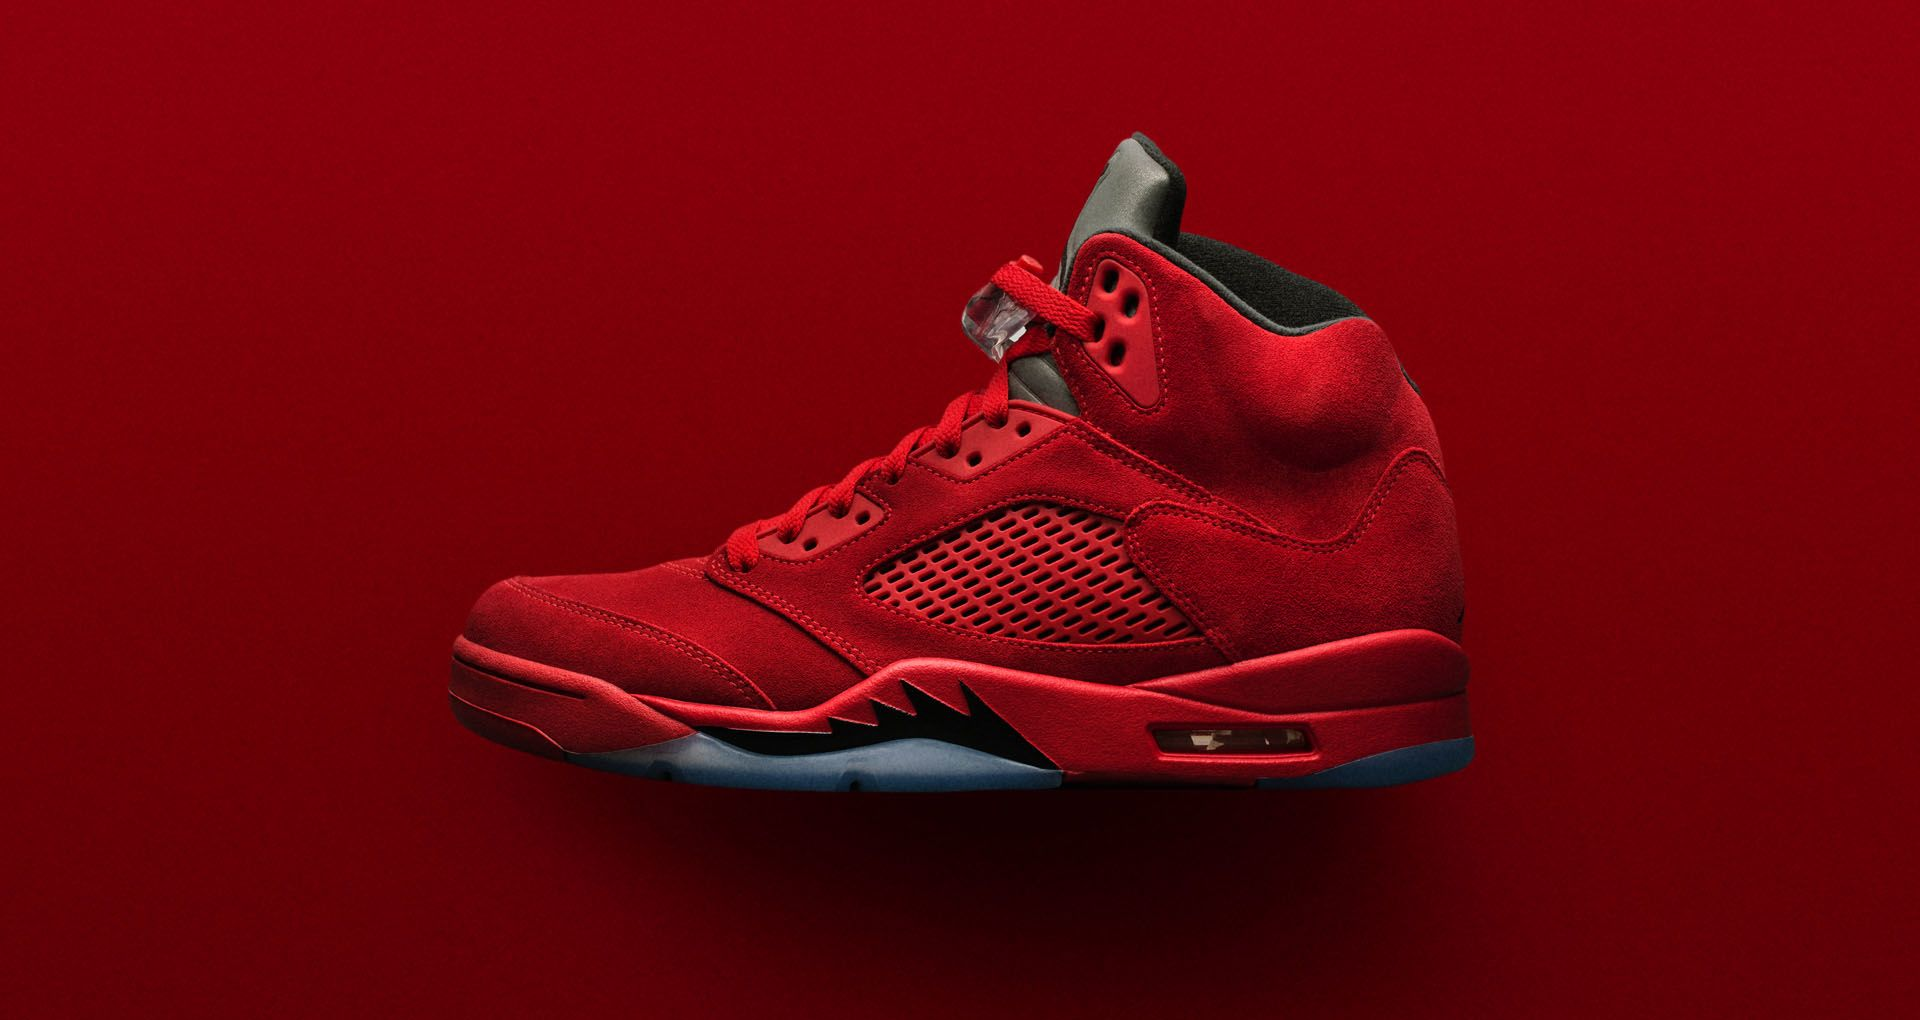 new arrival 19ac2 40161 Air Jordan 5 Retro Flight Suit 'University Red' Release Date ...